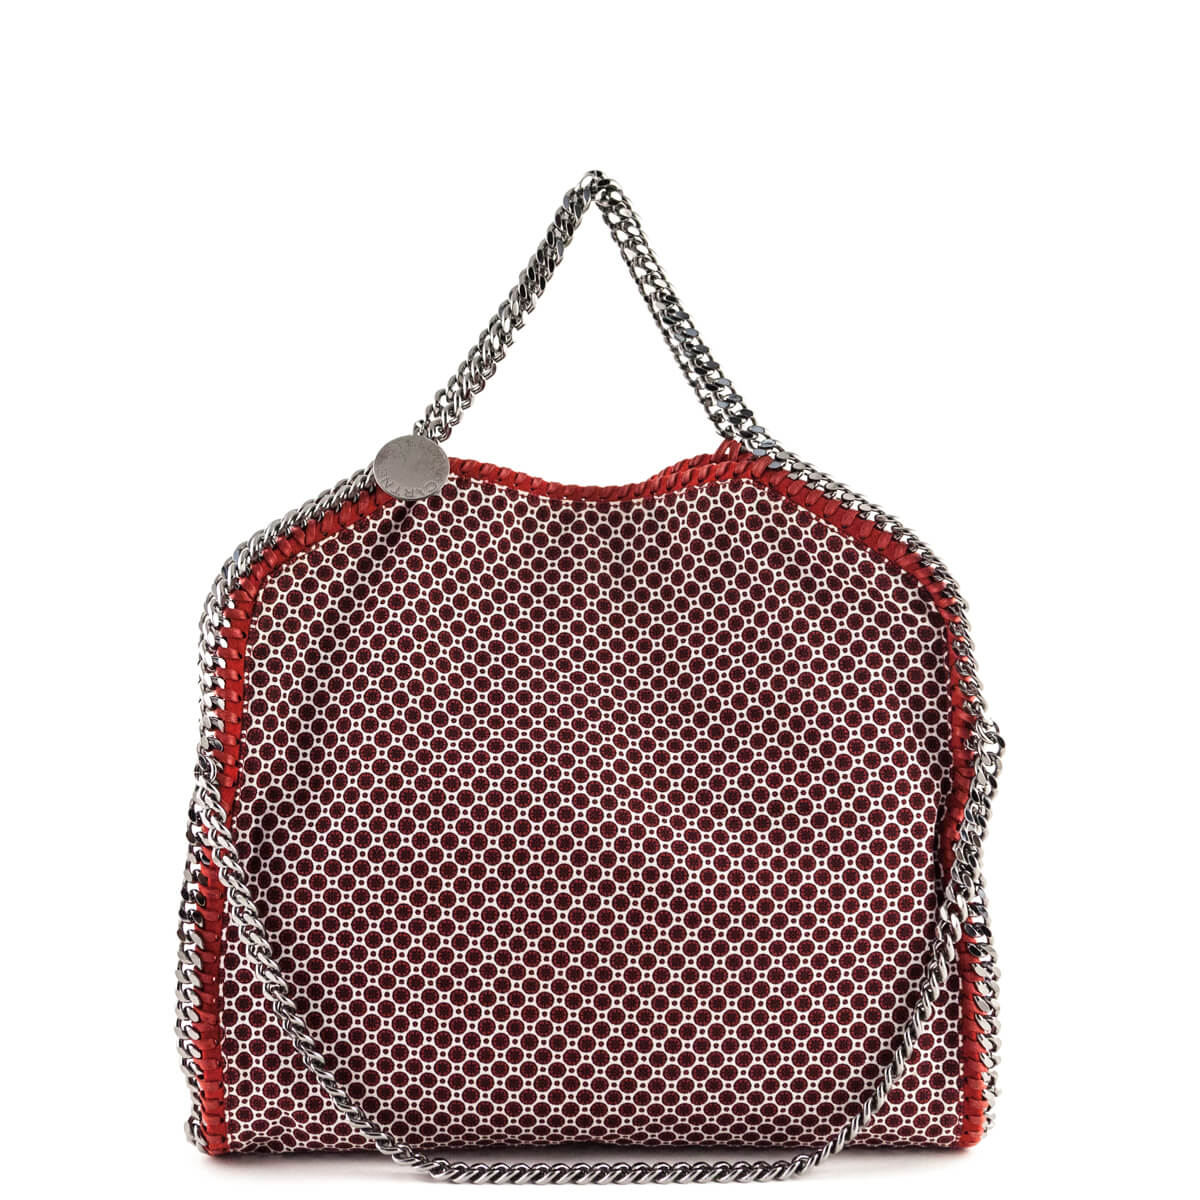 9186f91174b6 Stella McCartney Printed Canvas Falabella Tote - LOVE that BAG - Preowned  Authentic Designer Handbags ...